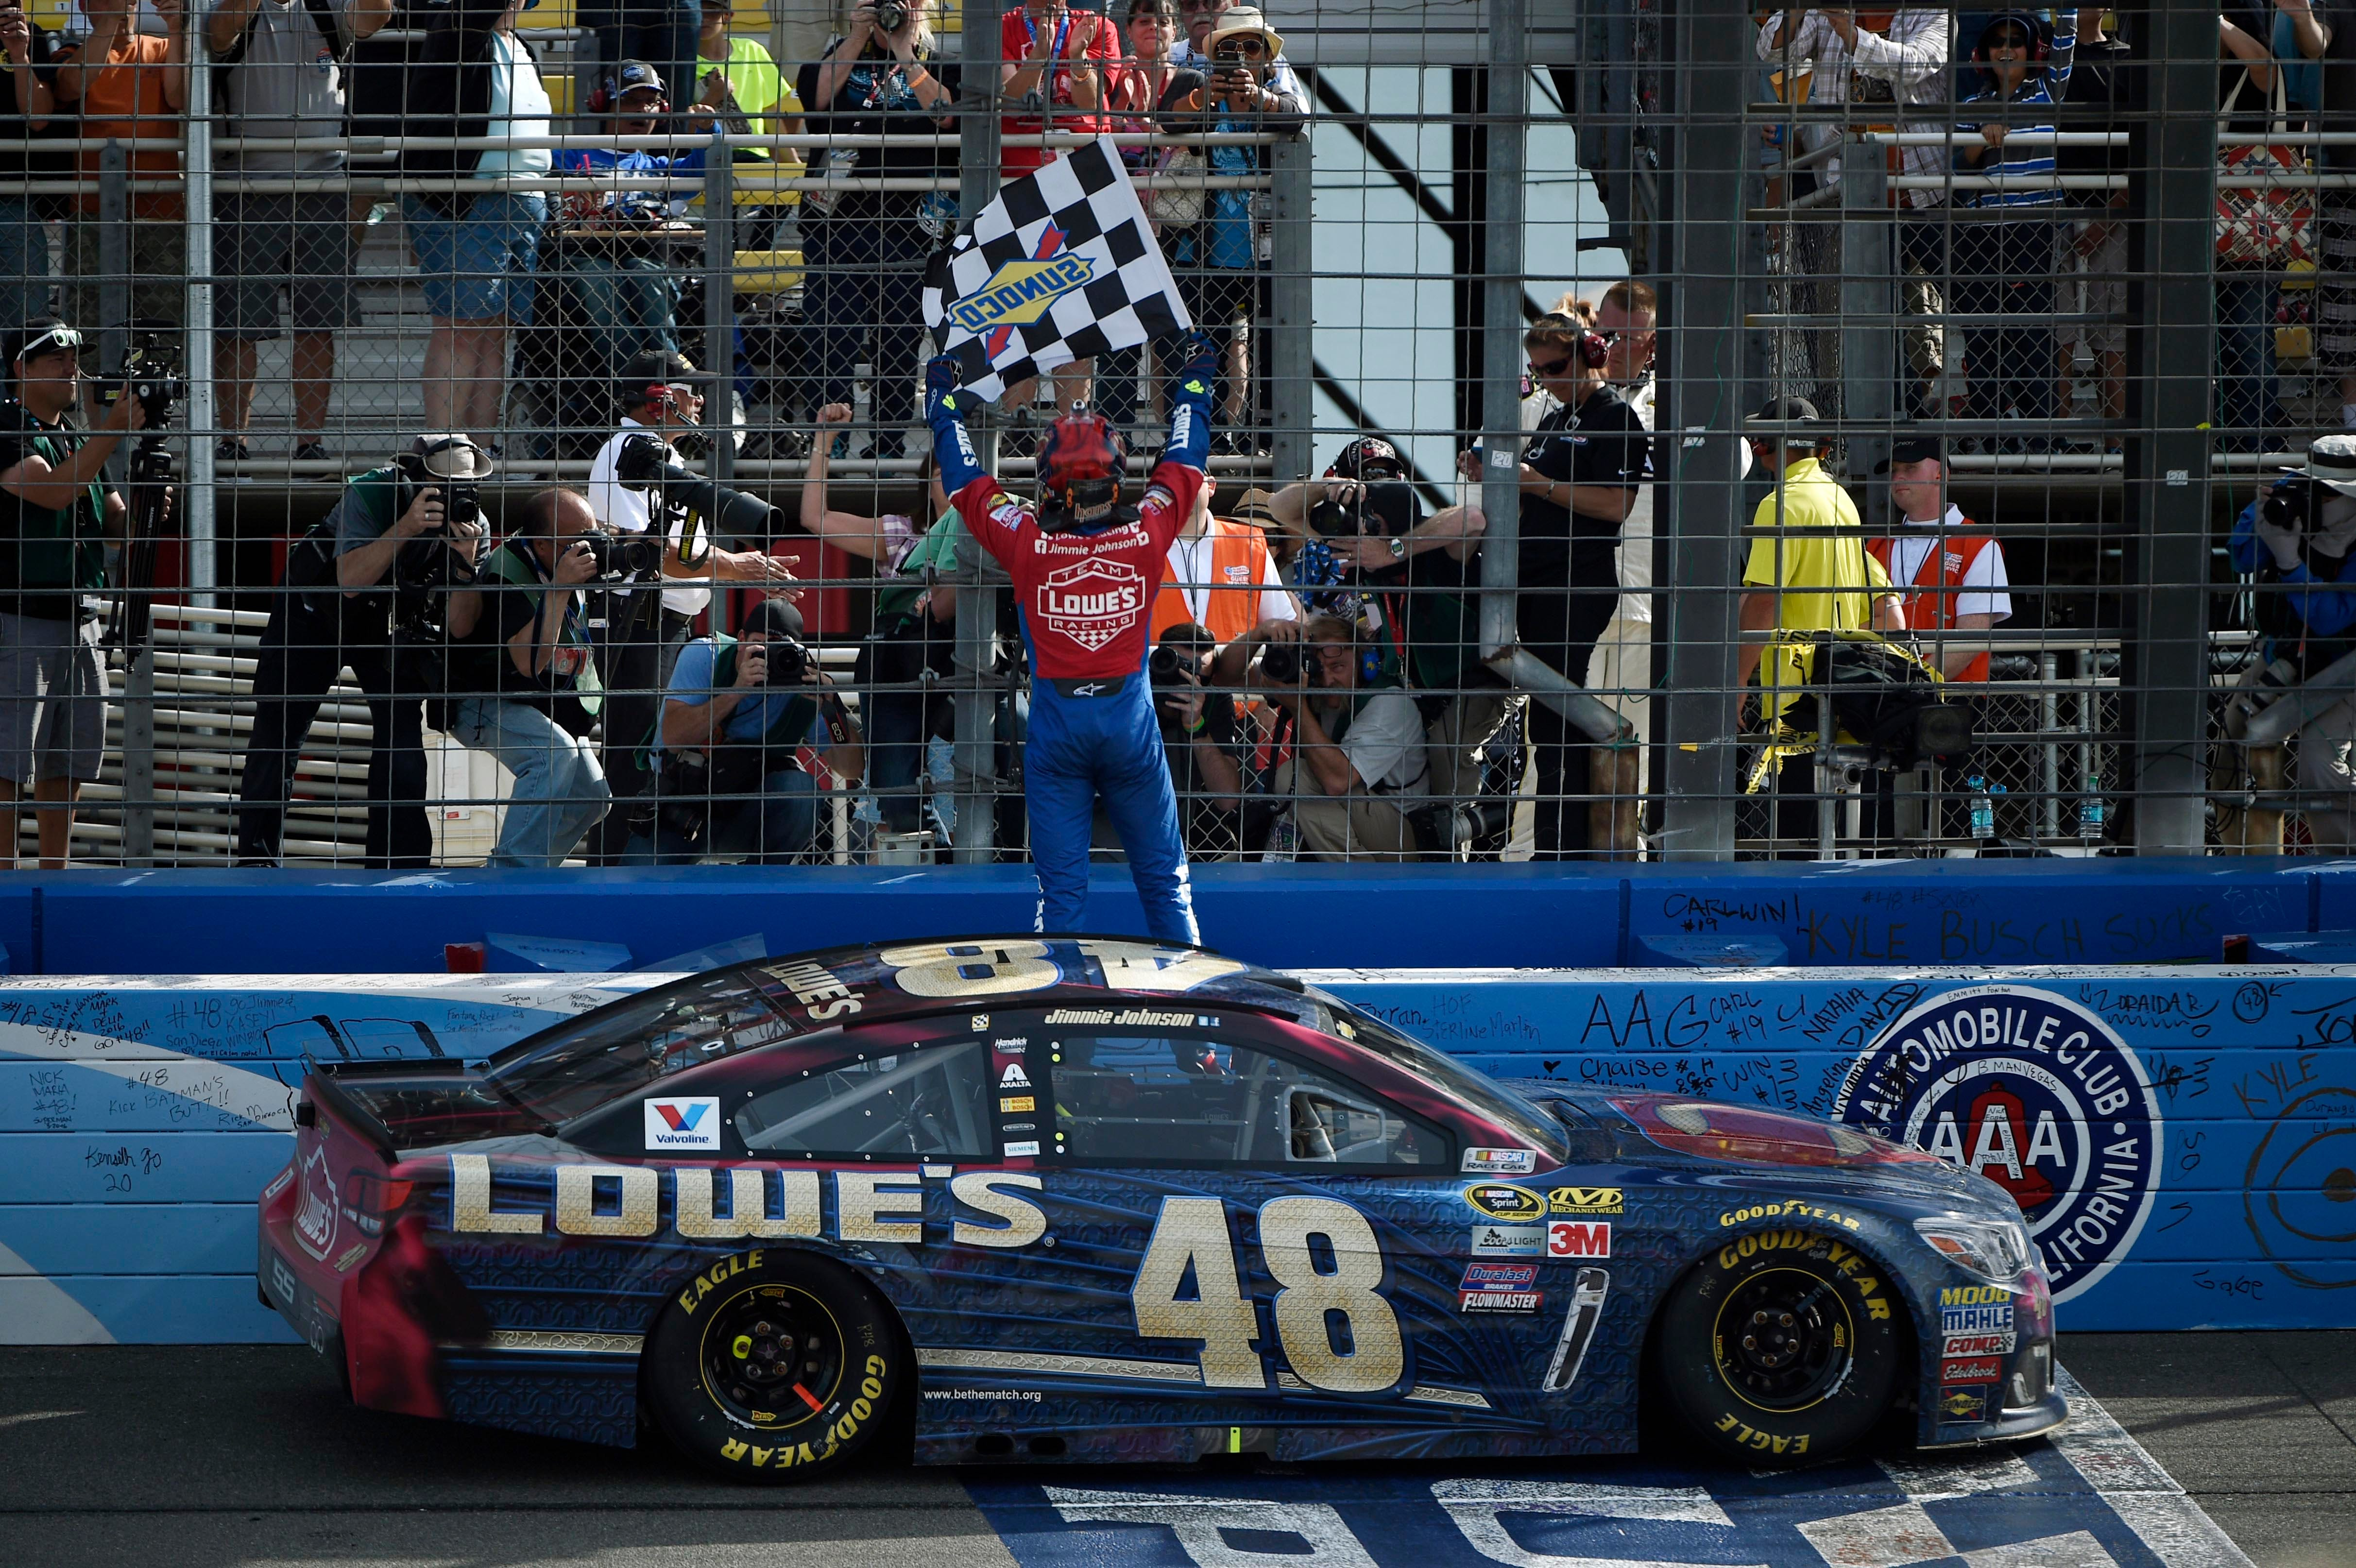 NASCAR Cup at Fontana Auto Club Speedway 2017: Start time, lineup, TV, more